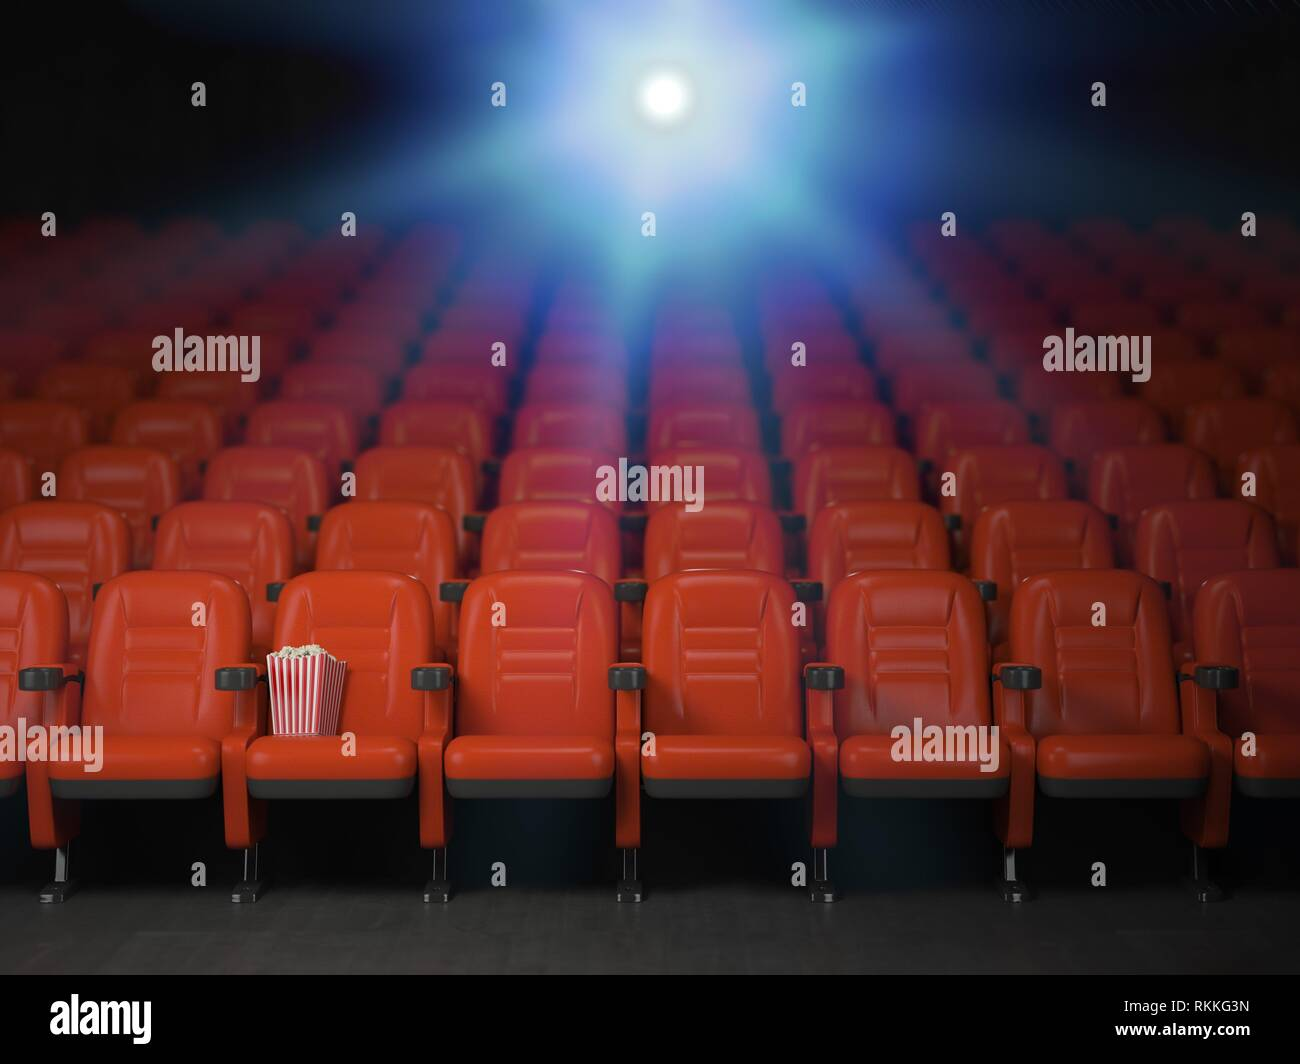 Cinema And Movie Theater Concept Background Empty Rows Of Red Seats With Pop Corn 3d Illustration Stock Photo Alamy